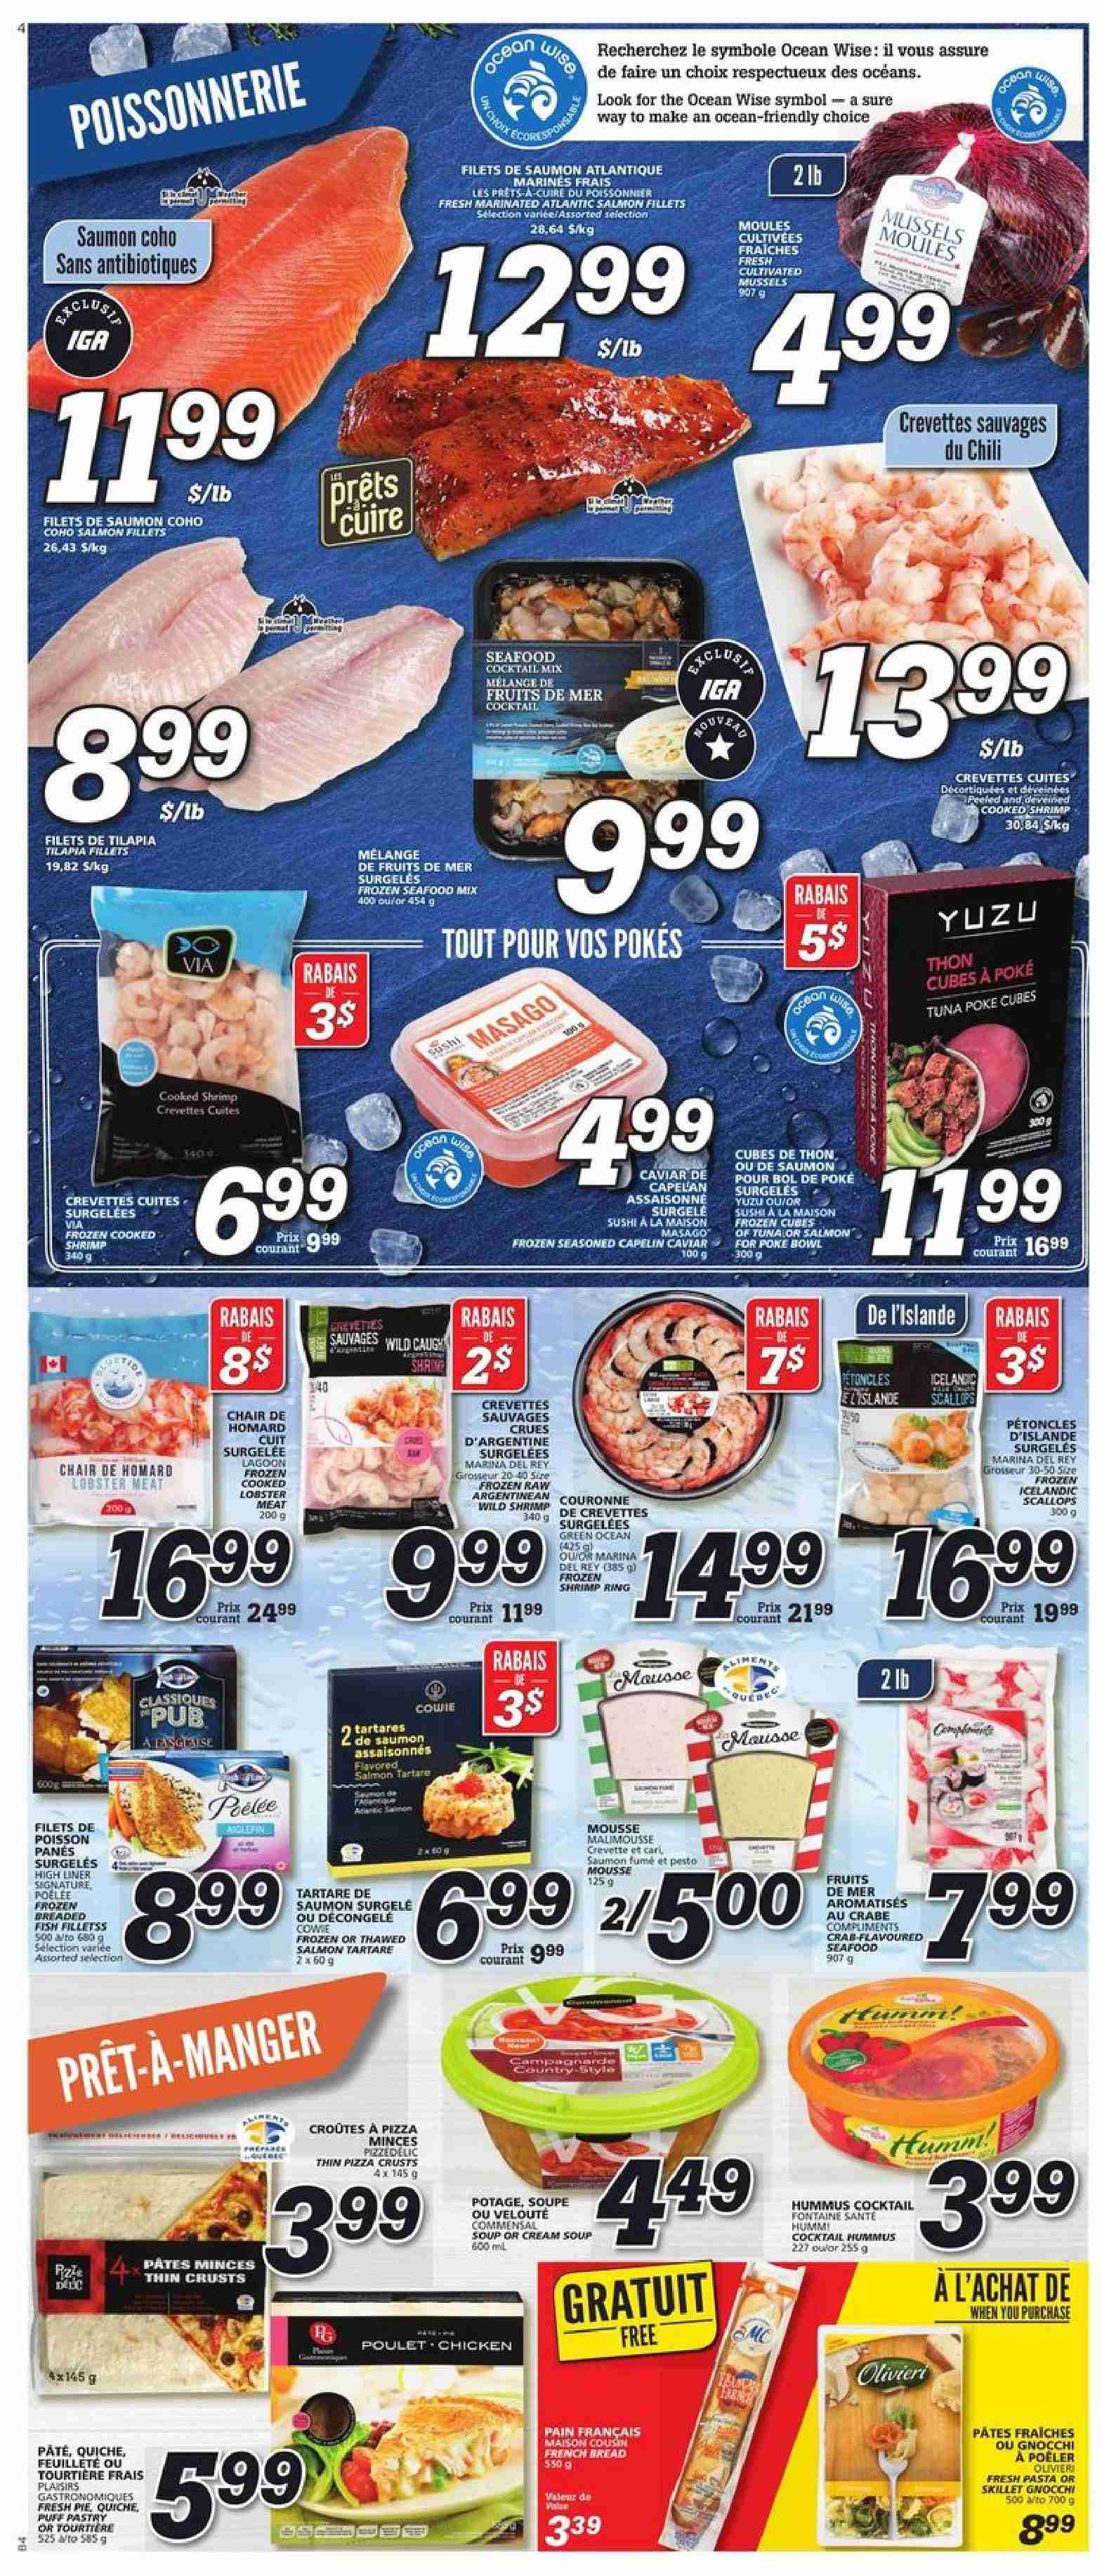 IGA Flyer  - February 28, 2019 - March 06, 2019. Page 4.